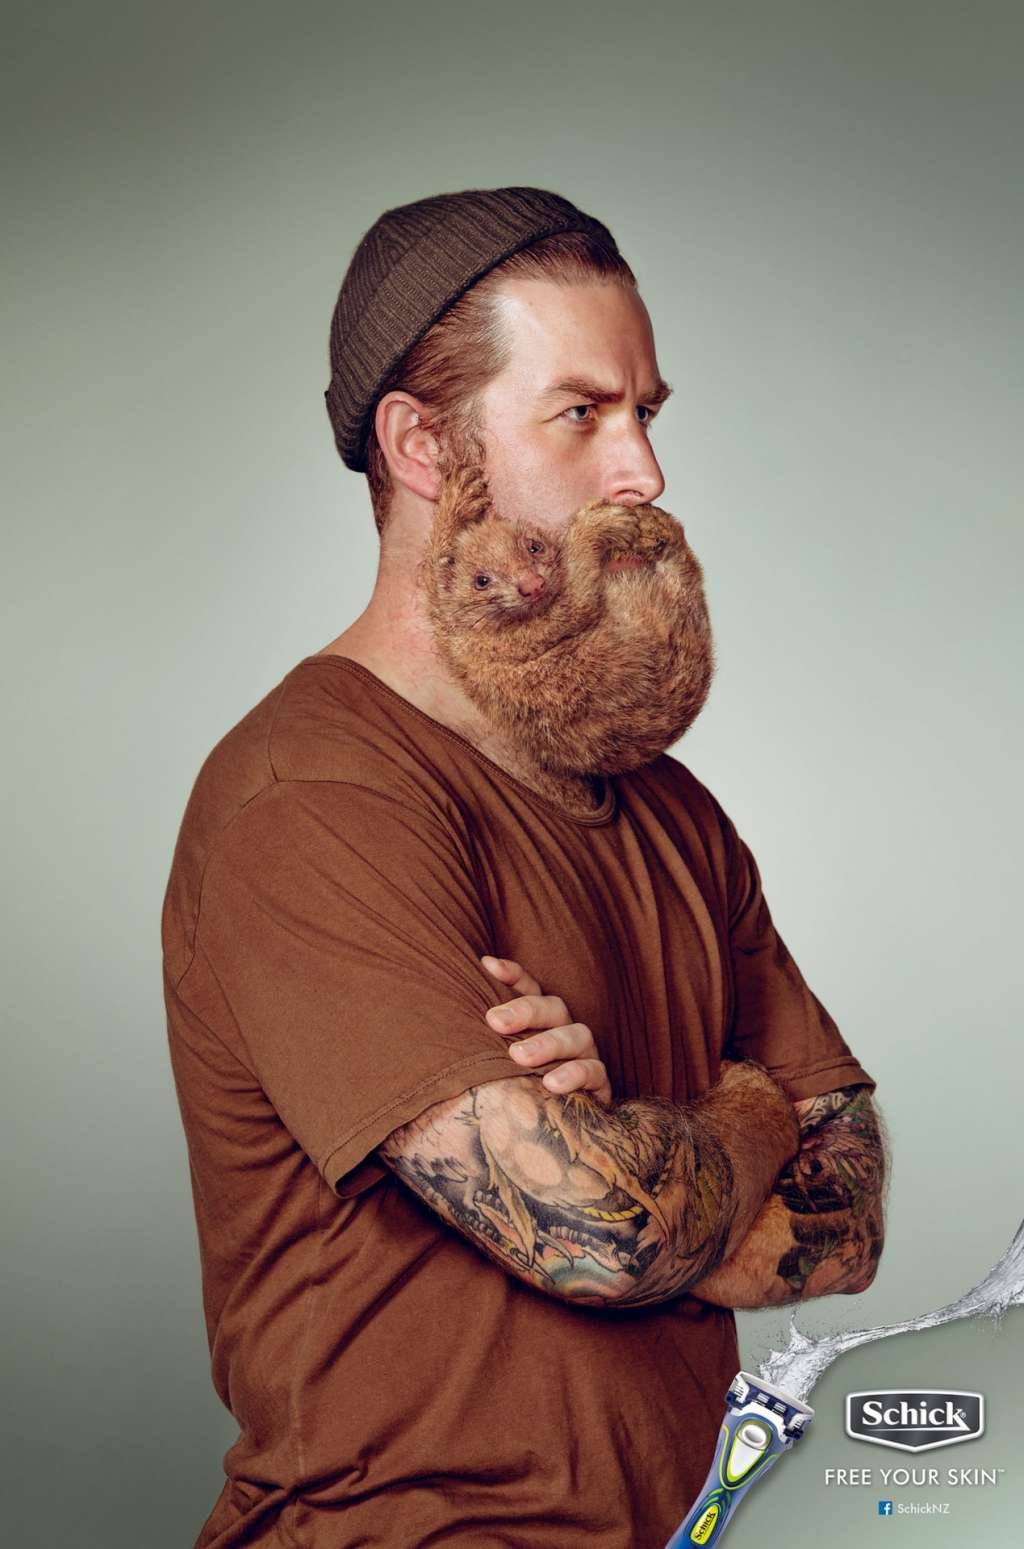 pell_mell_cream_schick_beards_1.jpg